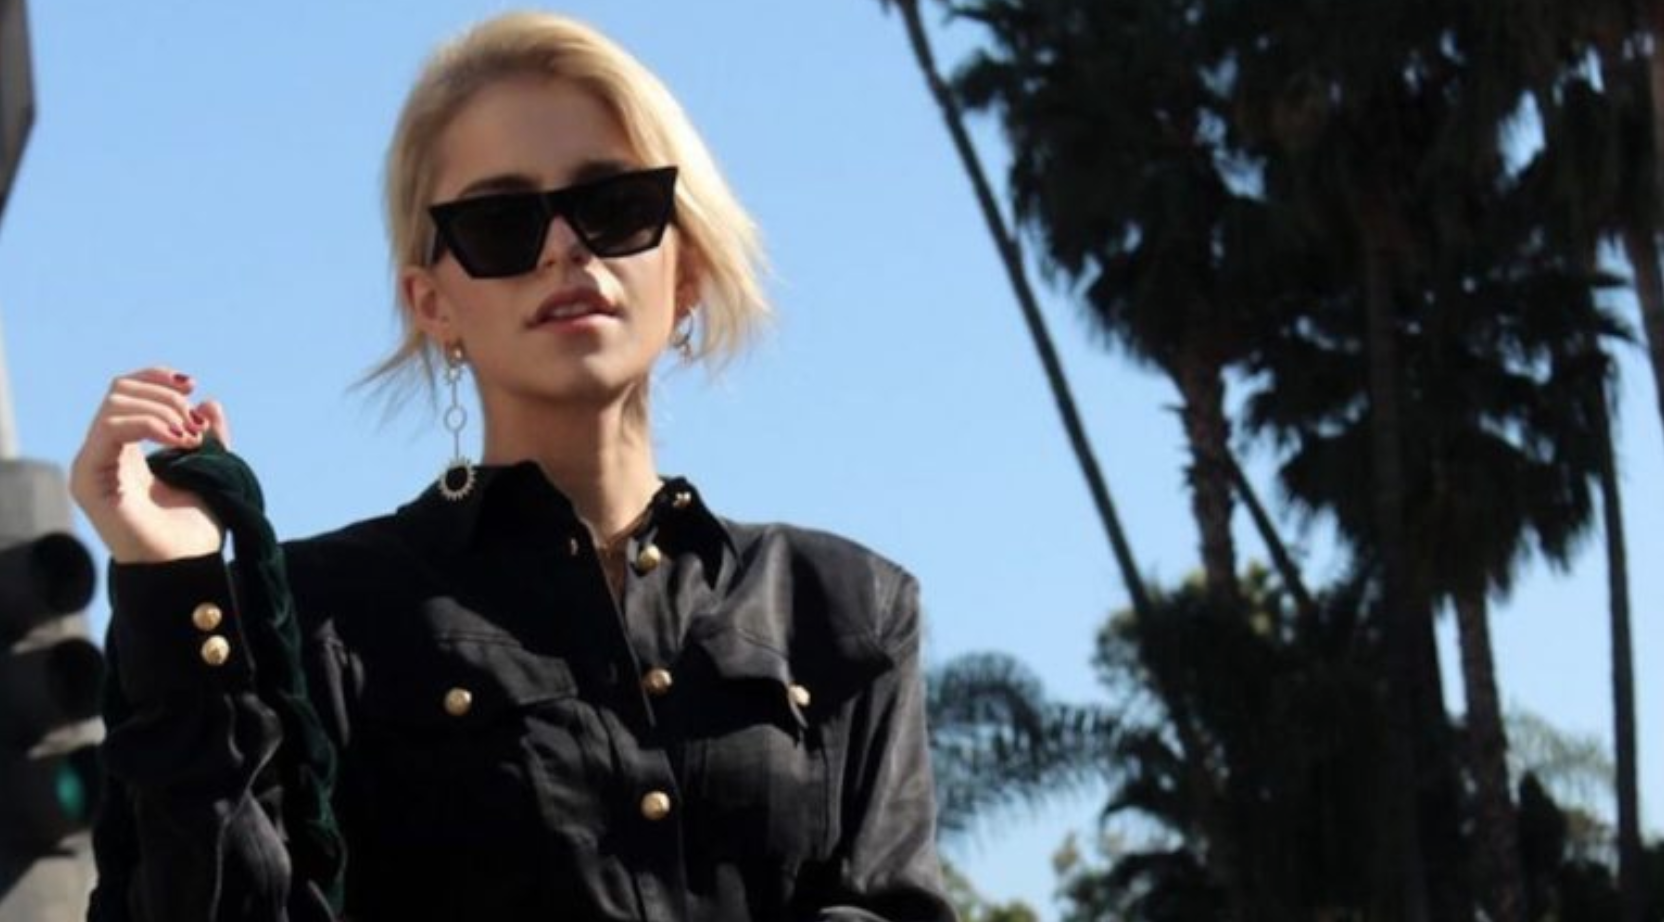 Caroline Daur walks past palm trees in black sunglasses and a leather jacket.